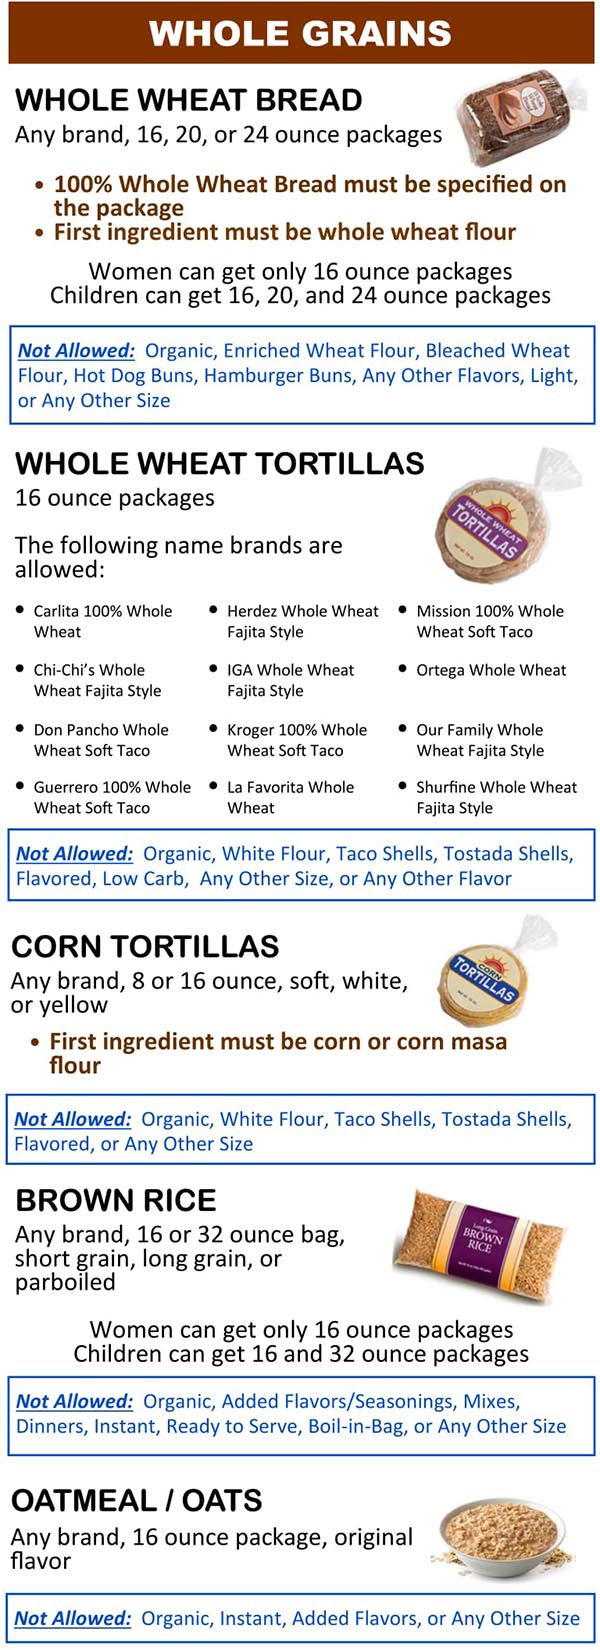 Wyoming WIC Food List Whole Grains, Whole Wheat Bread, Whole Wheat Tortillas, Corn Tortillas, Brown Rice and Oatmeal